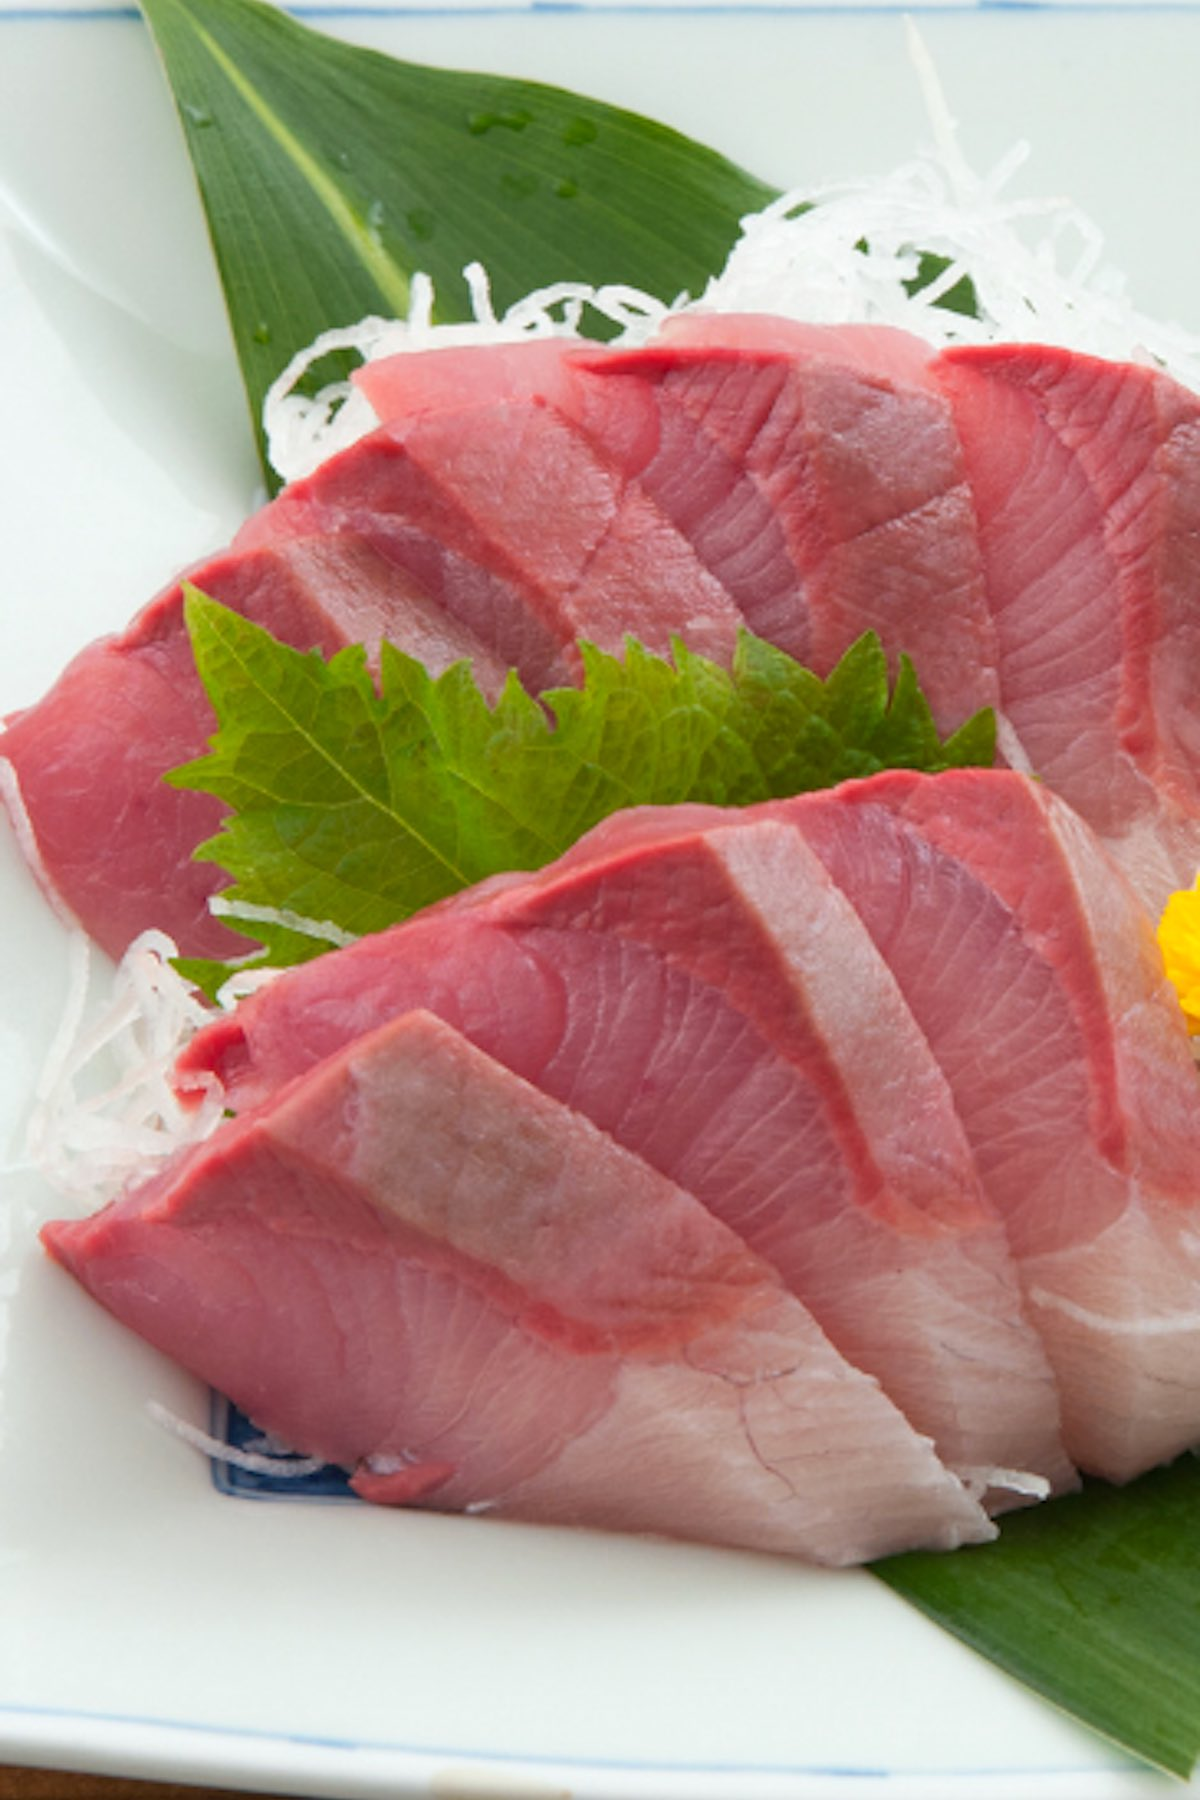 Yellowtail Sashimi made with delicious and buttery Hamachi fish! It's so much cheaper than the Japanese restaurants, and incredibly easy to make at home. I'll share with you how to cut yellowtail for sashimi, and make both the traditional and Nobu new style sashimi. #YellowtailSashimi #HamachiSashimi